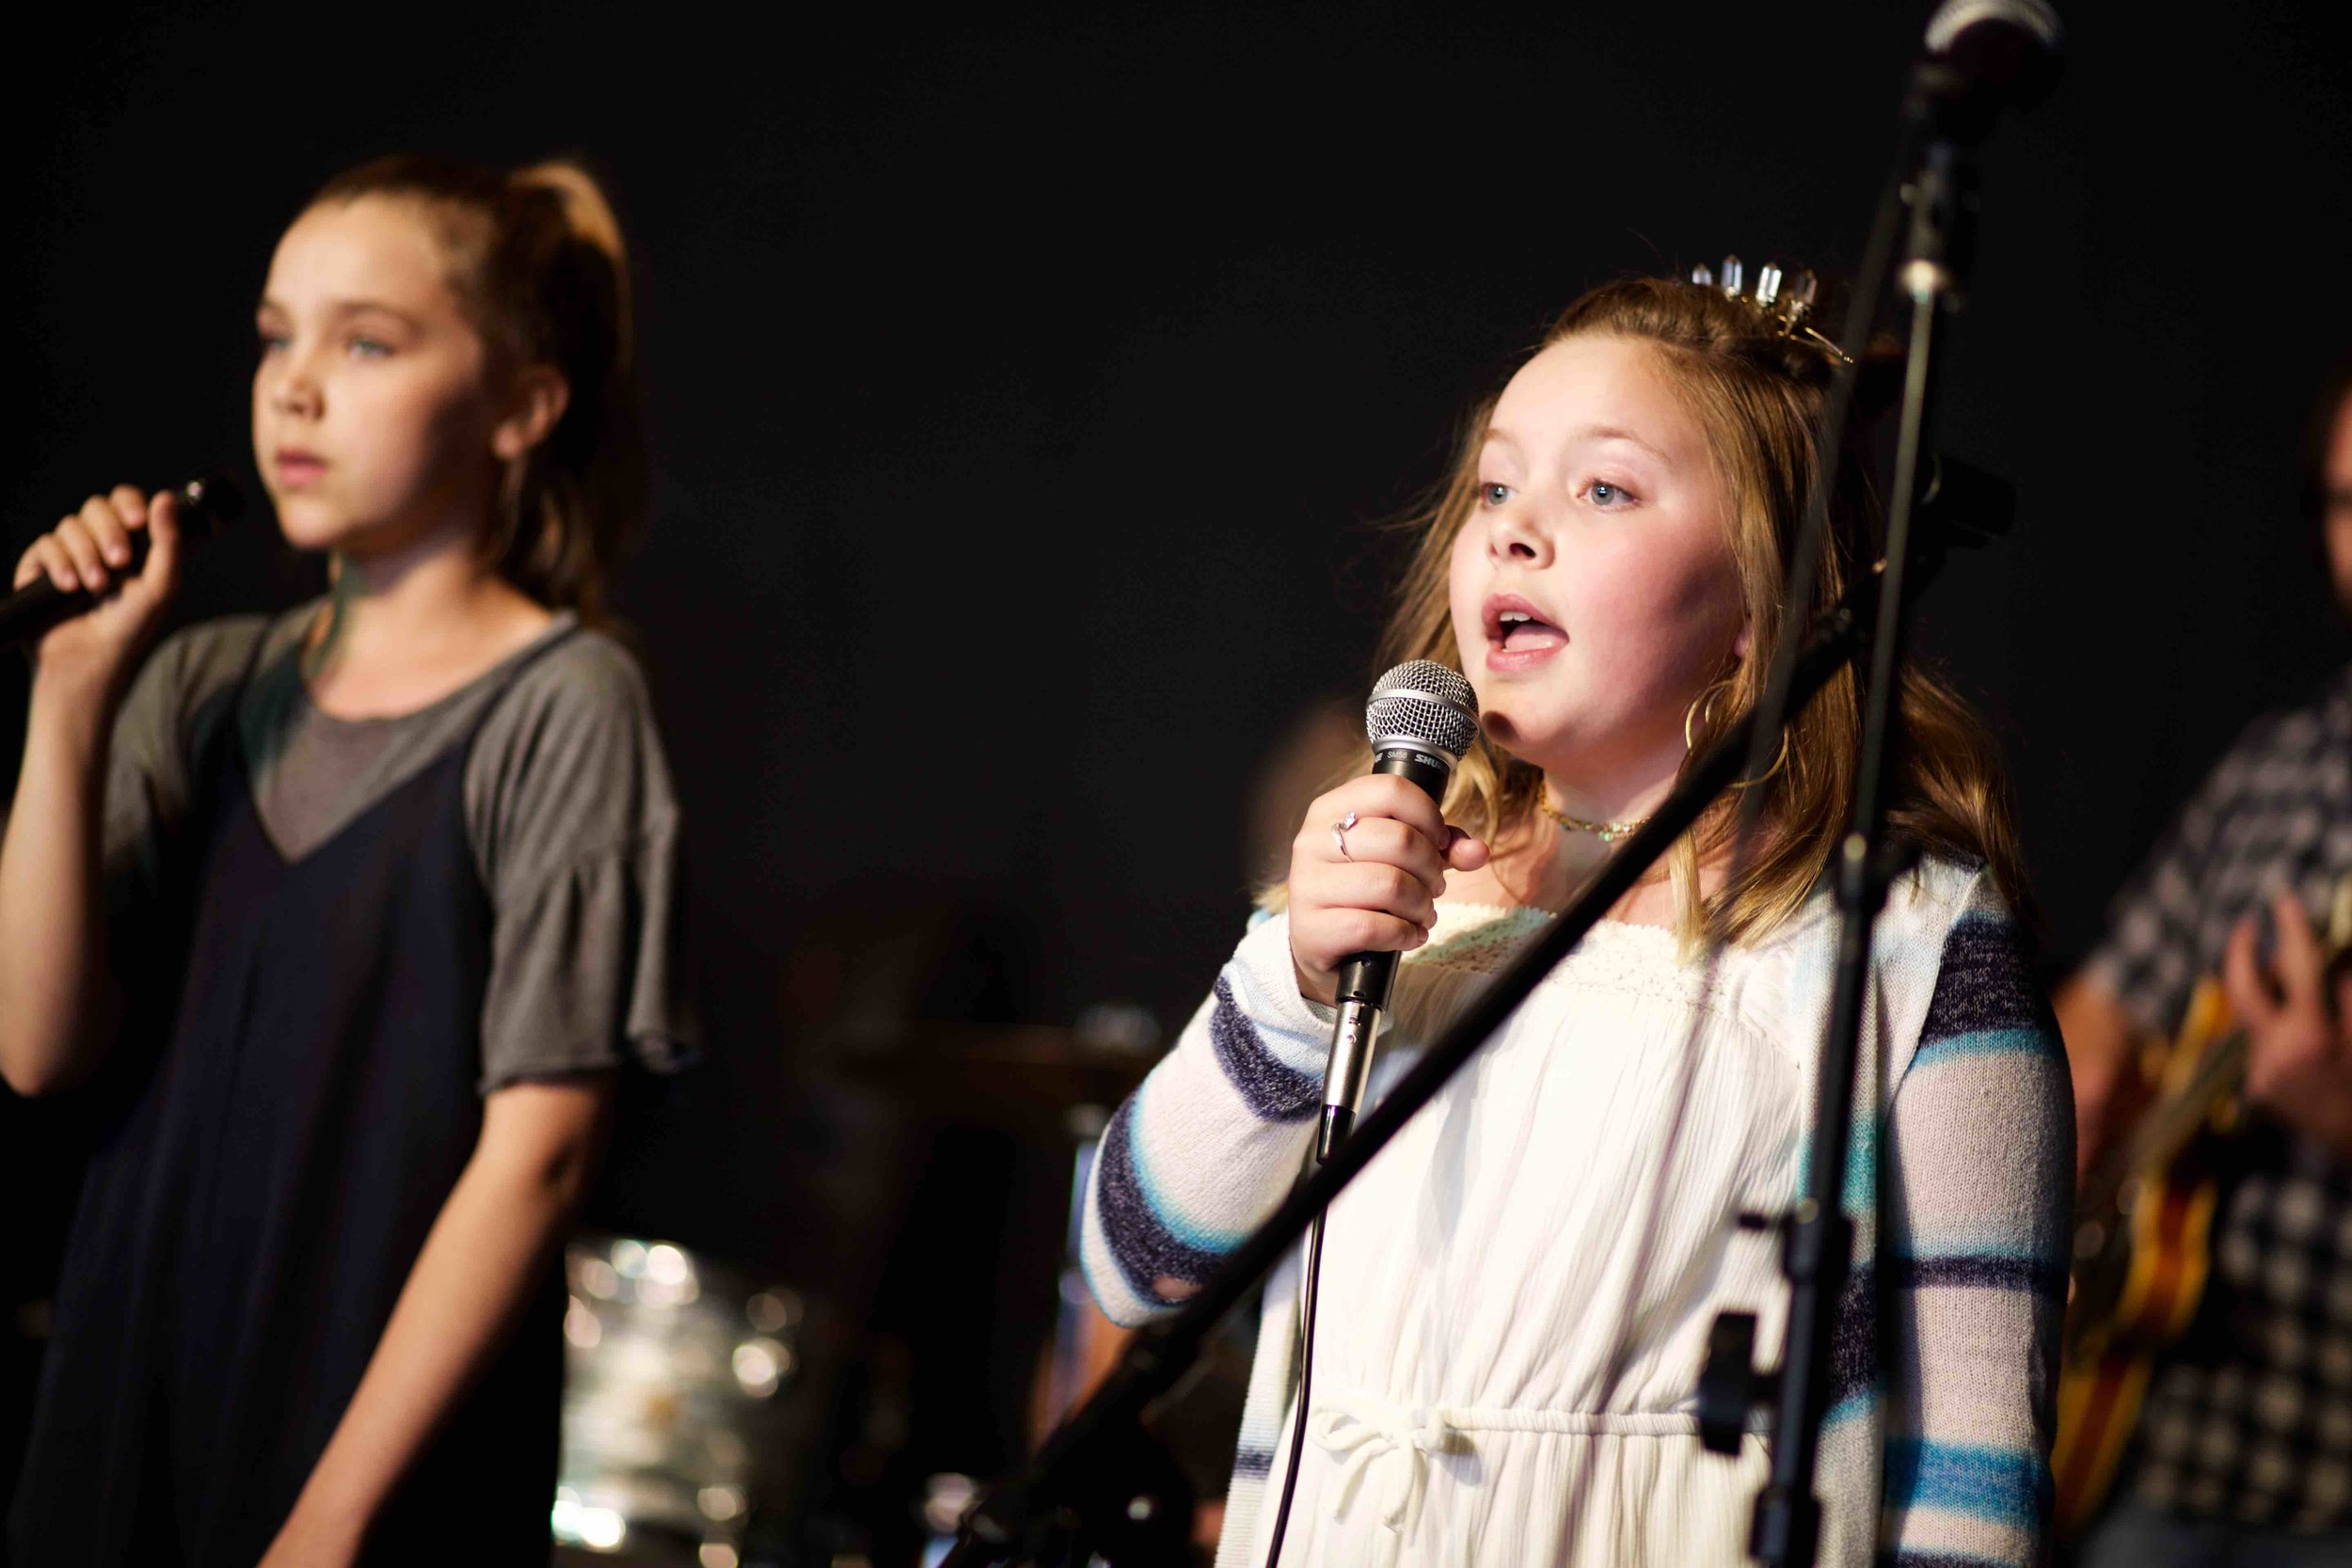 Redmond singing lessons for kids, teens, and adults at Cascade Voice Academy (formerly Issaquah Voice Studio)